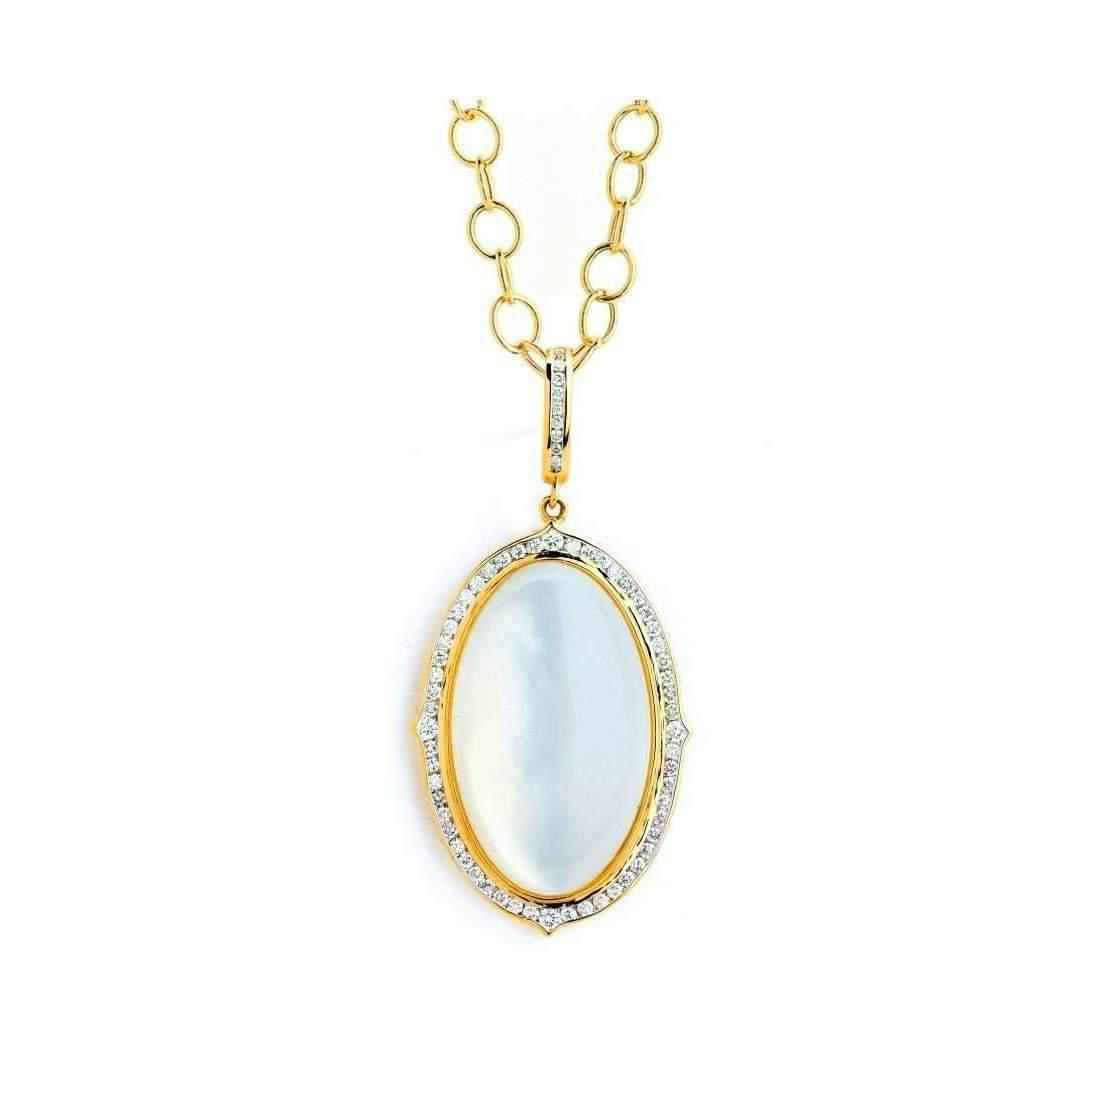 Syna 18kt Large Drop Pendant With Champagne Diamonds on 18kt Chain iPFRLHC